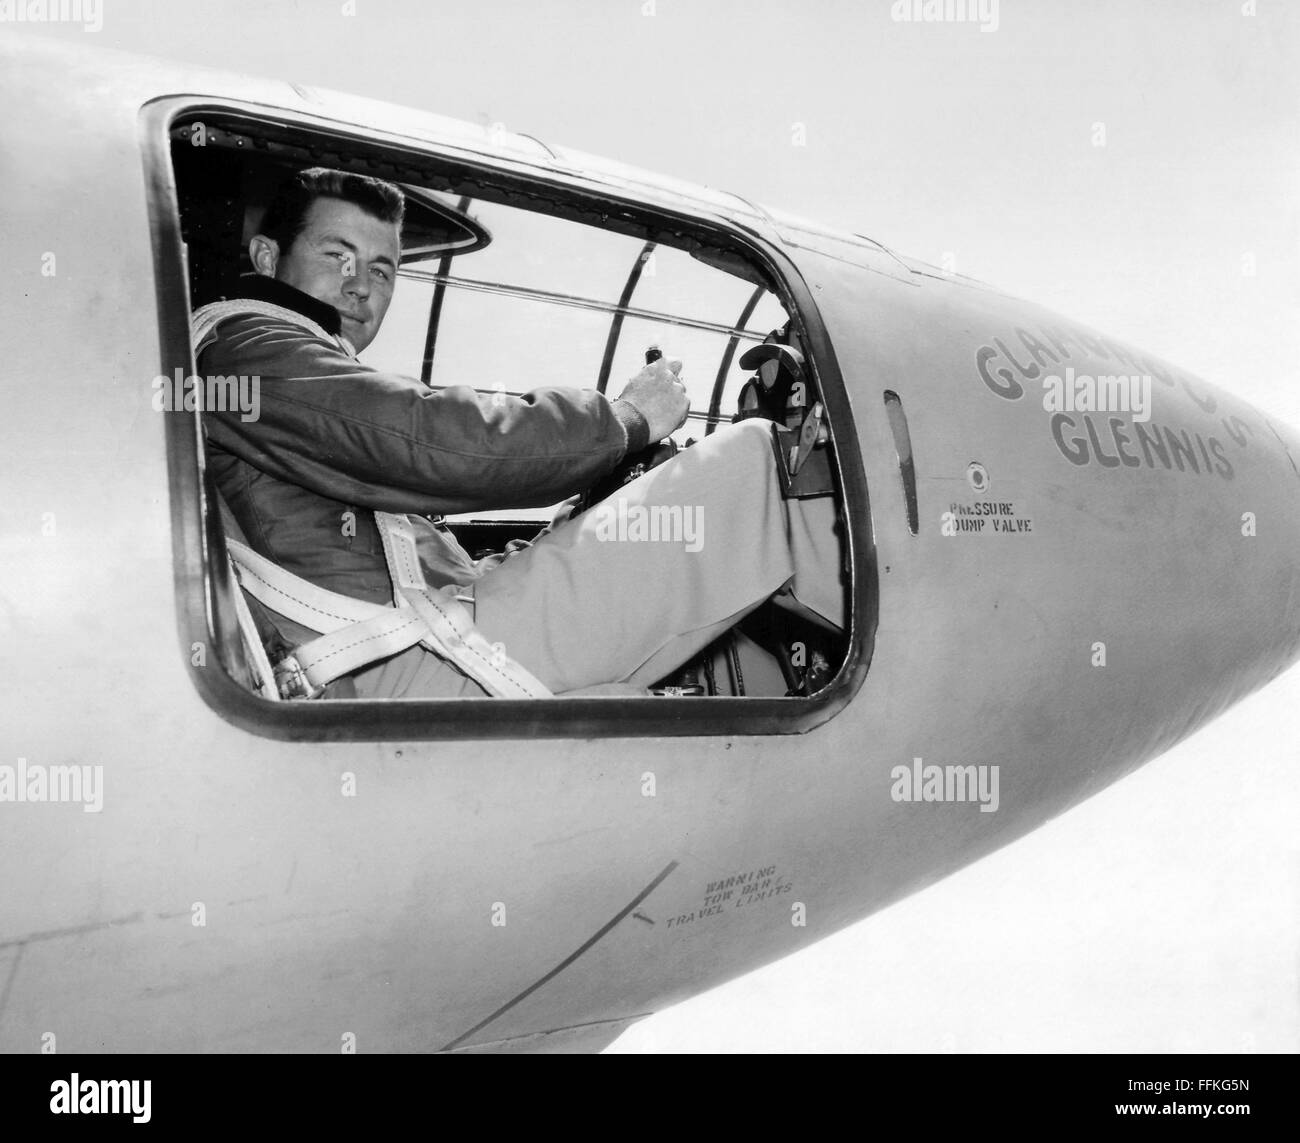 """Chuck Yeager. US Air Force test pilot Chuck Yeager in the cockpit of the Bell X-1 """"Glamorous Glennis"""" in which he broke the sound barrier. Photo c.1947 by USAF Stock Photo"""